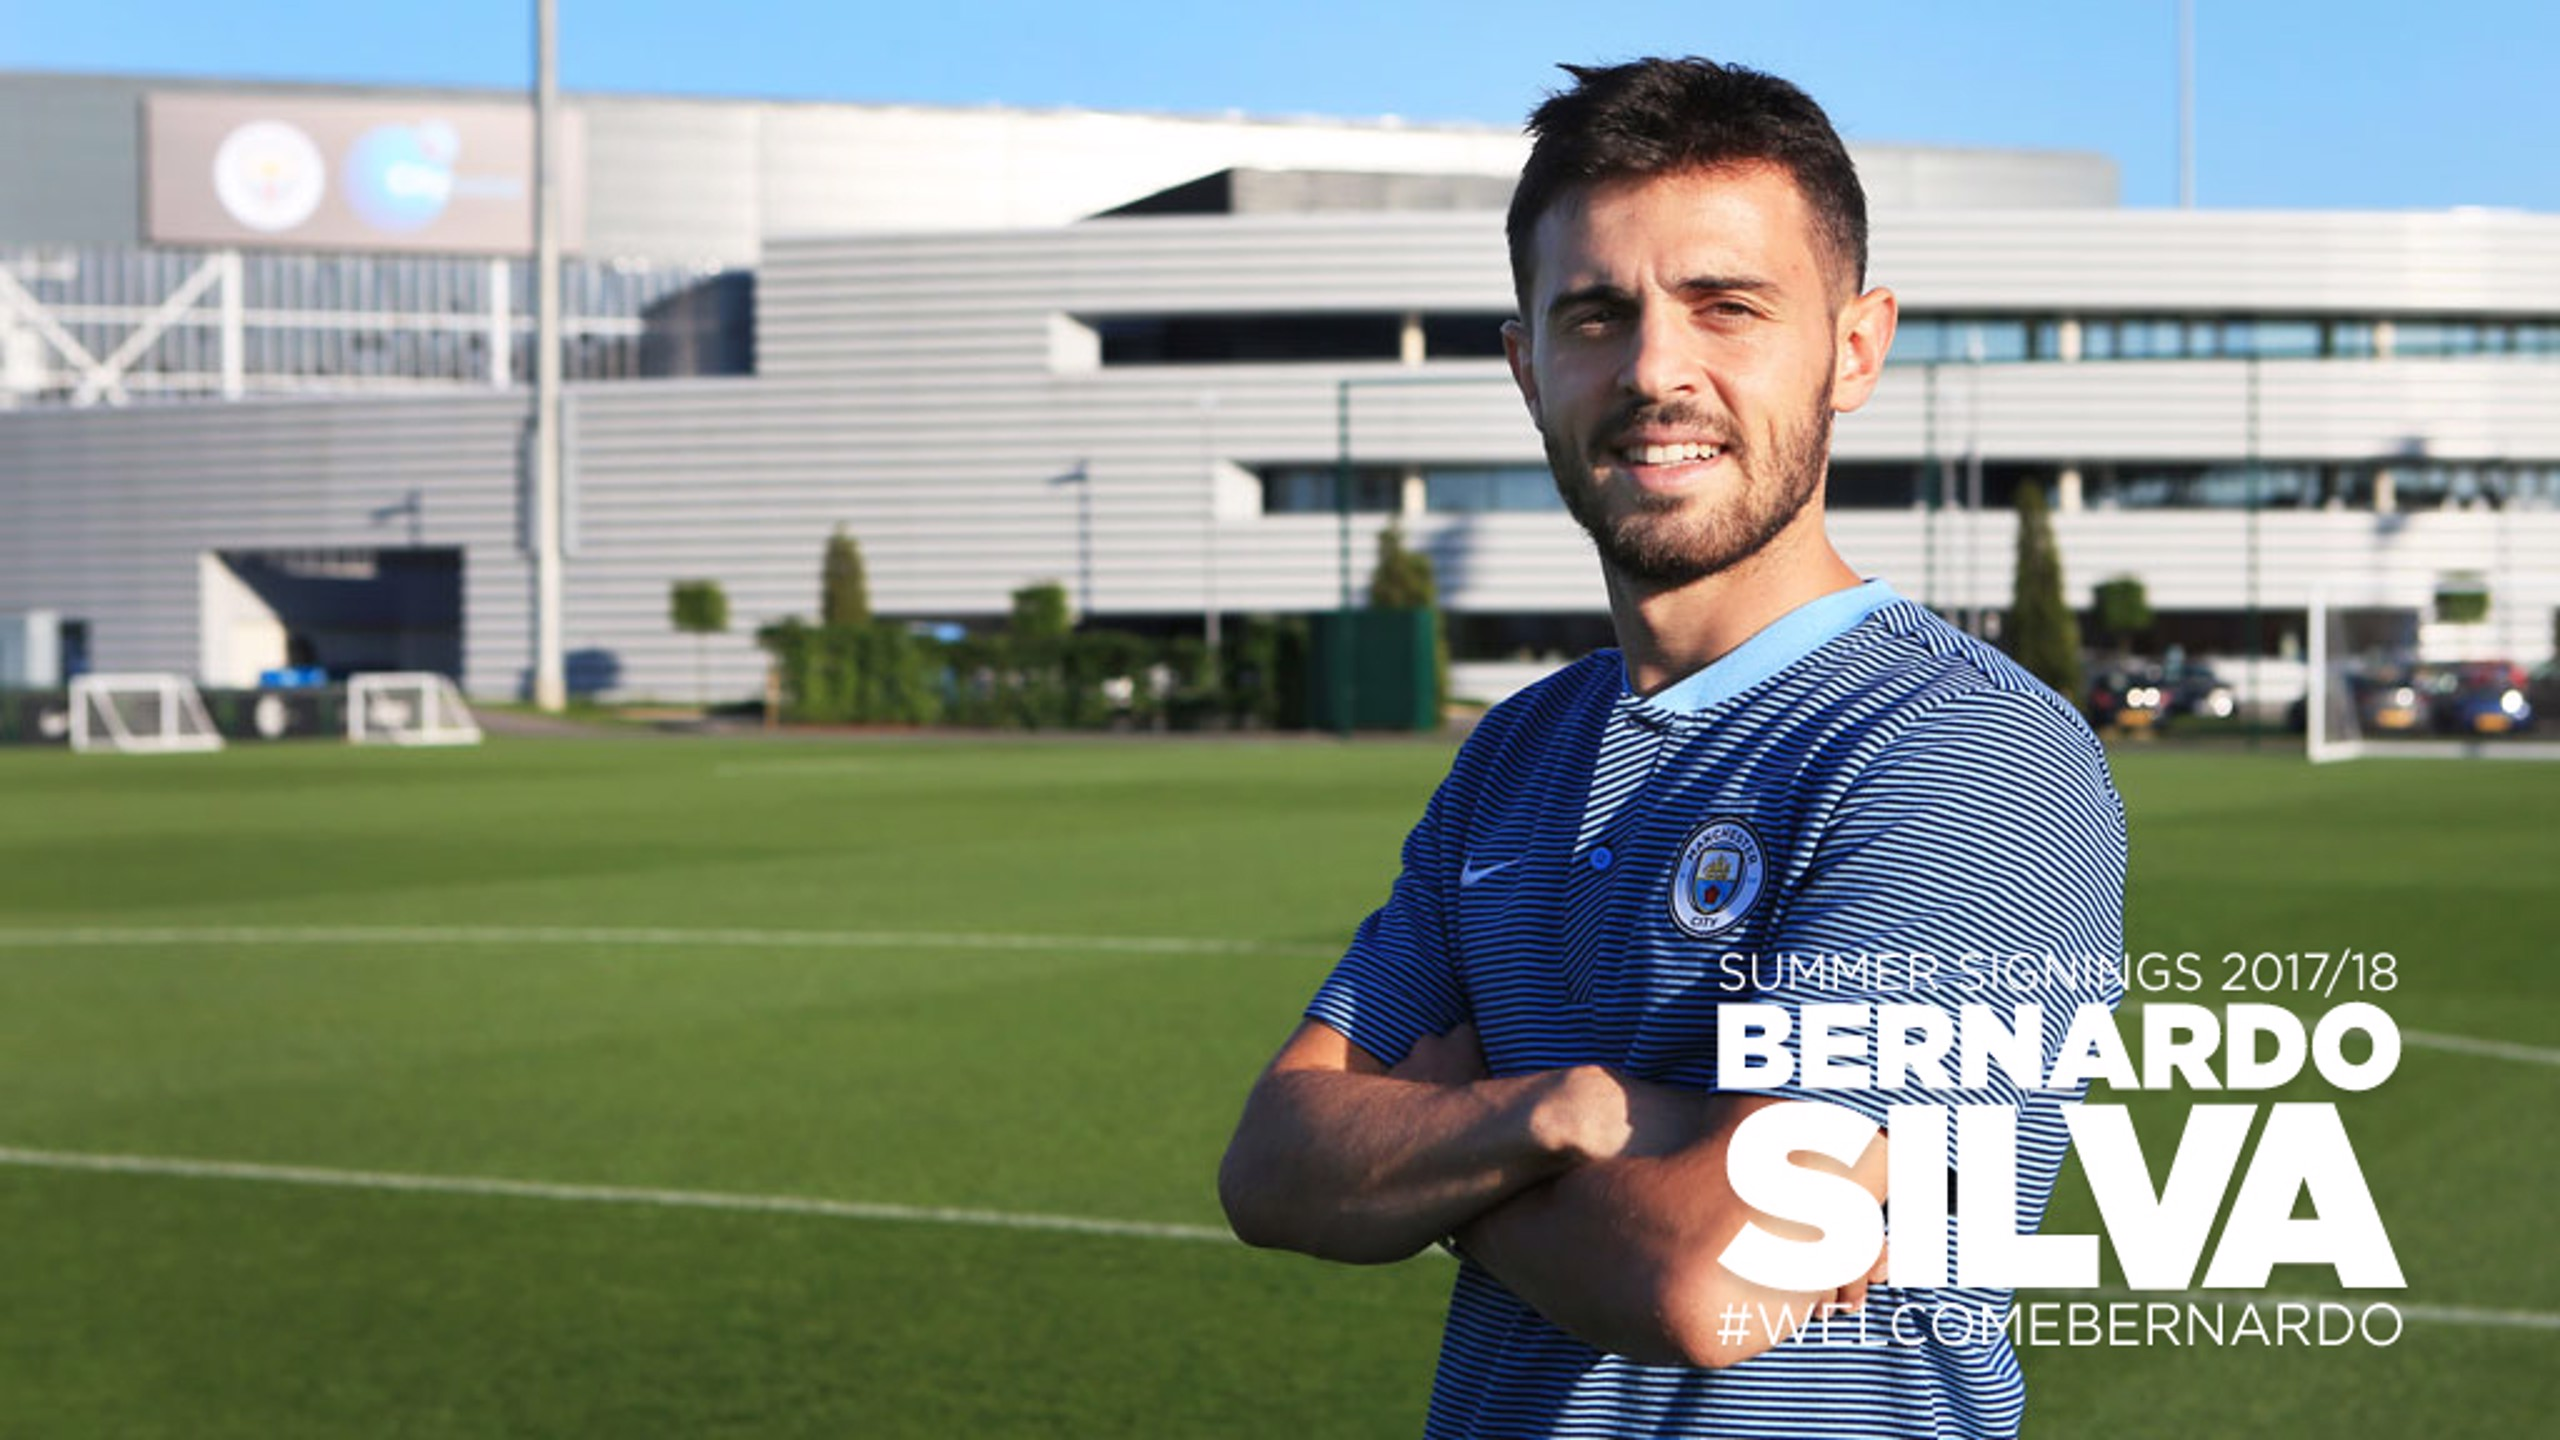 Bernardo Silva sonríe frente a la City Football Academy